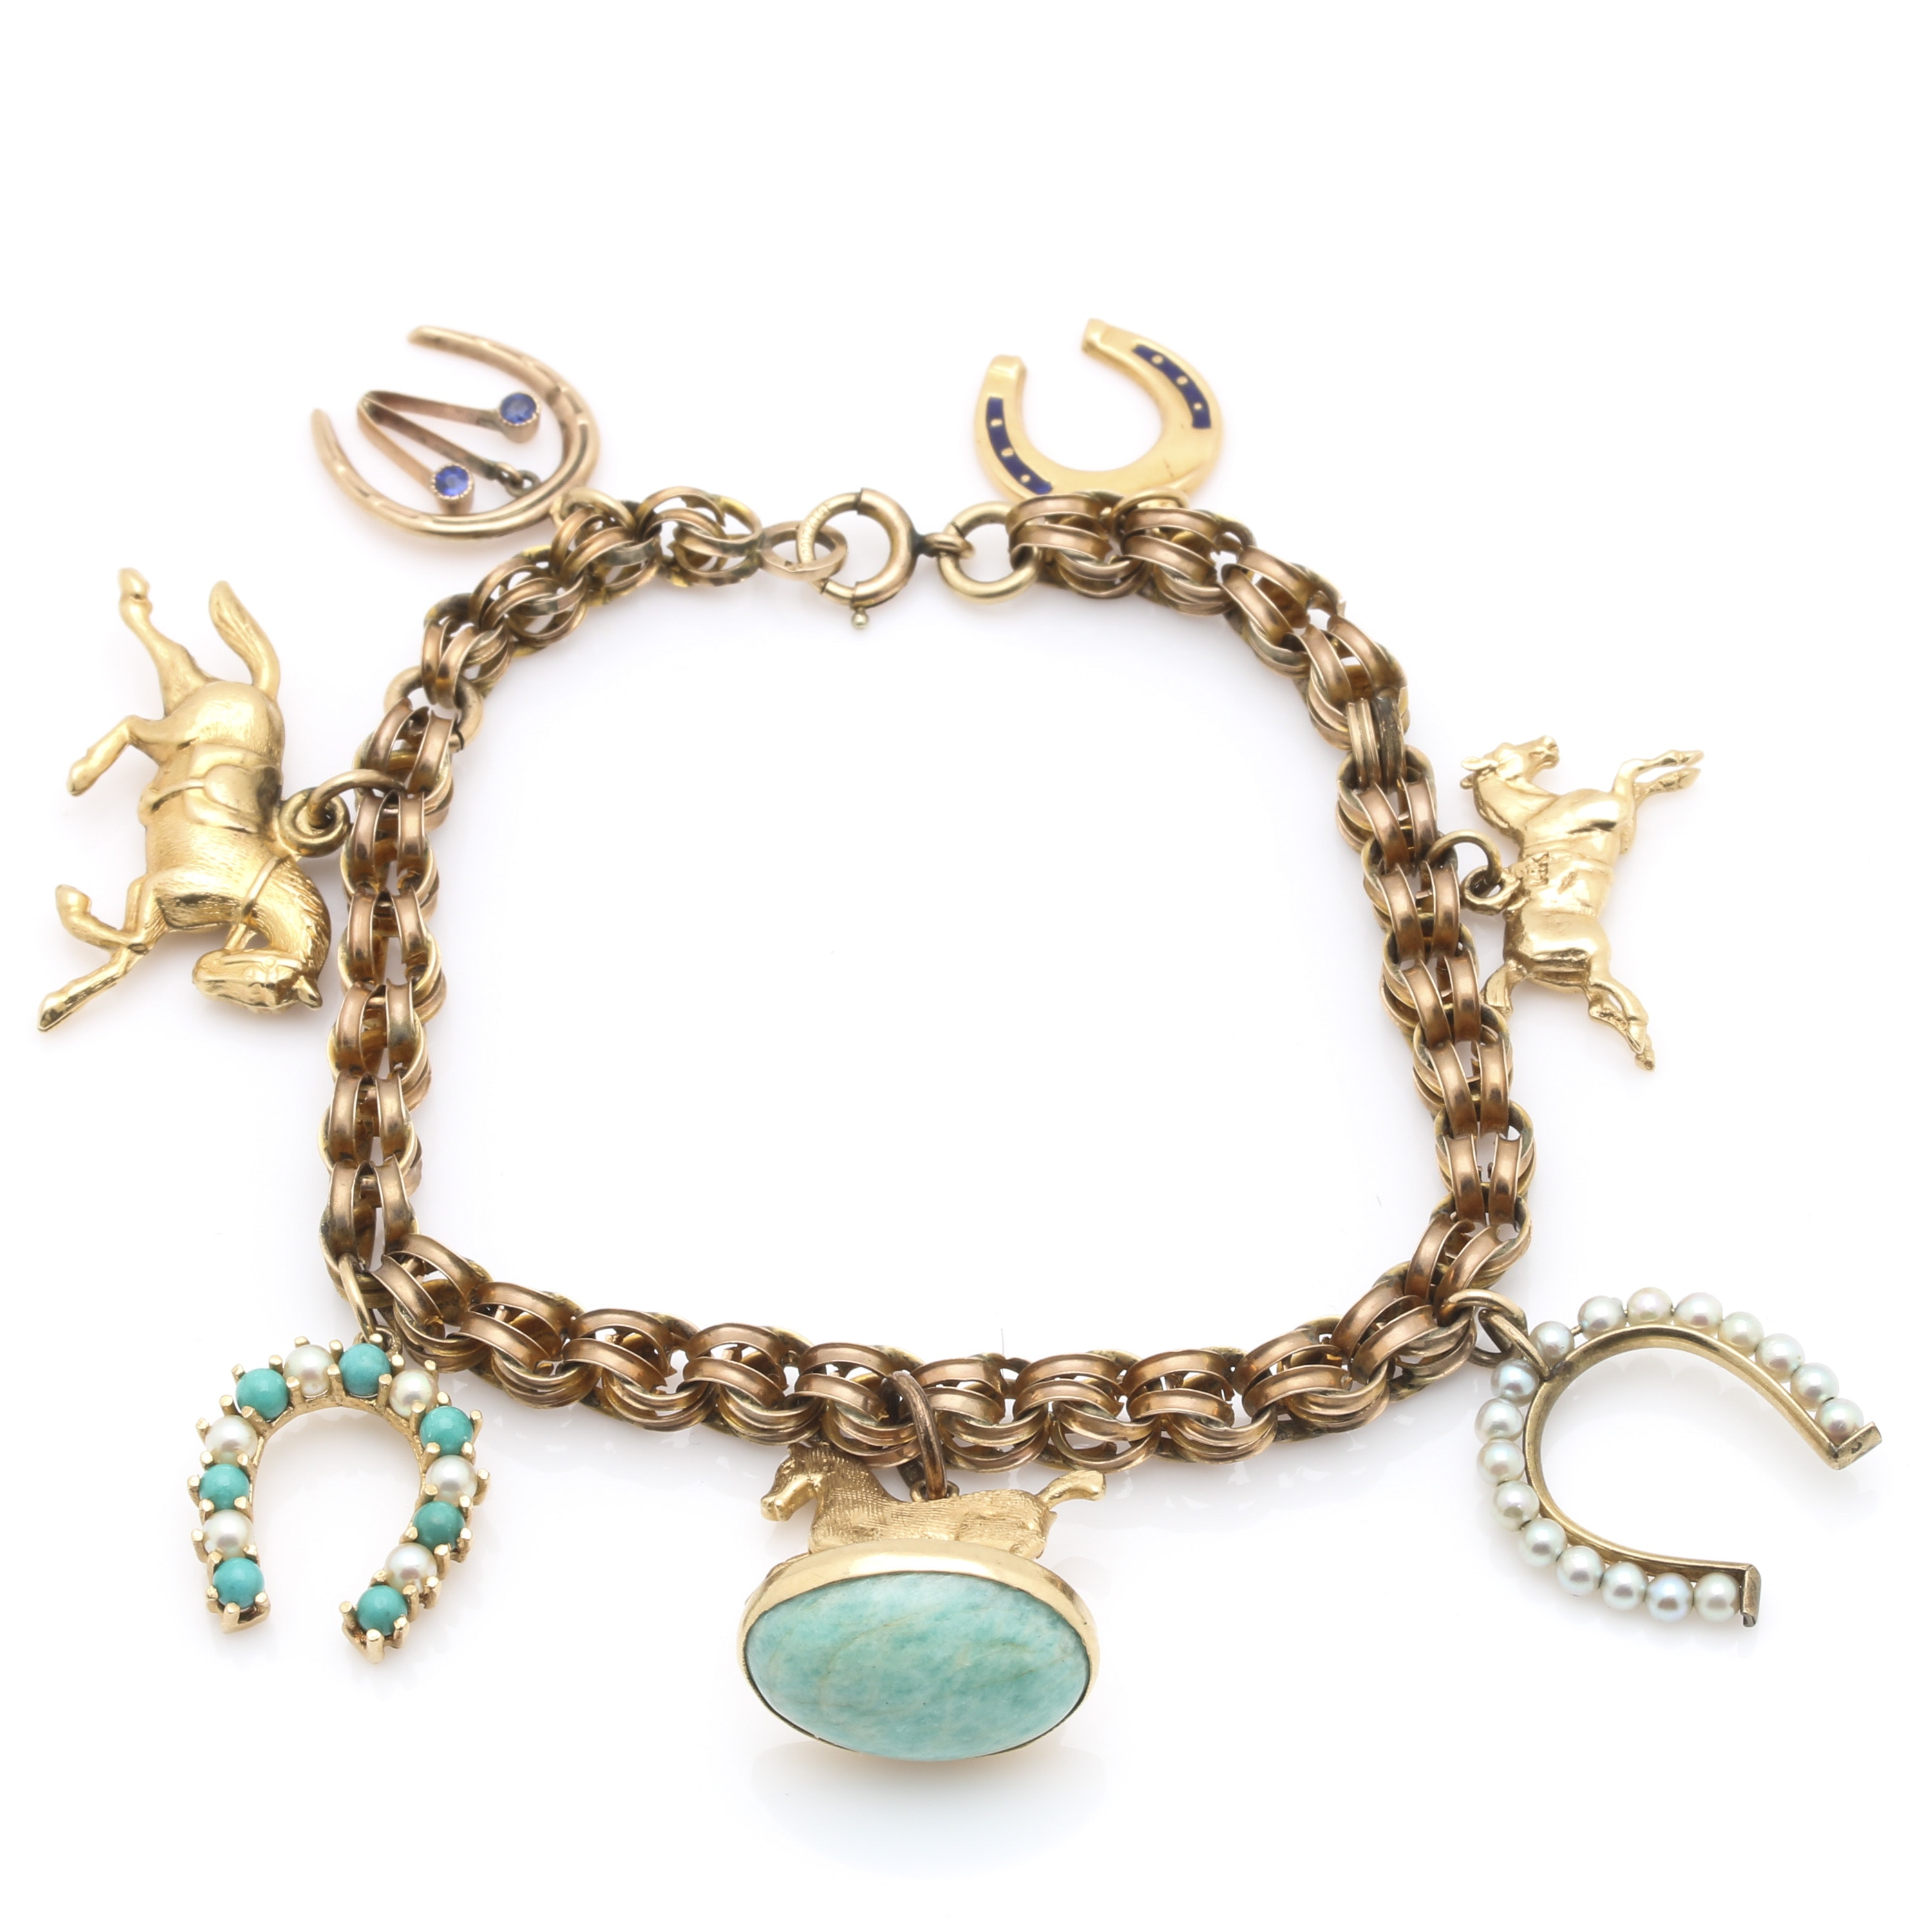 Gold Filled Equestrian Charm Bracelet With 14K Yellow Gold Charms